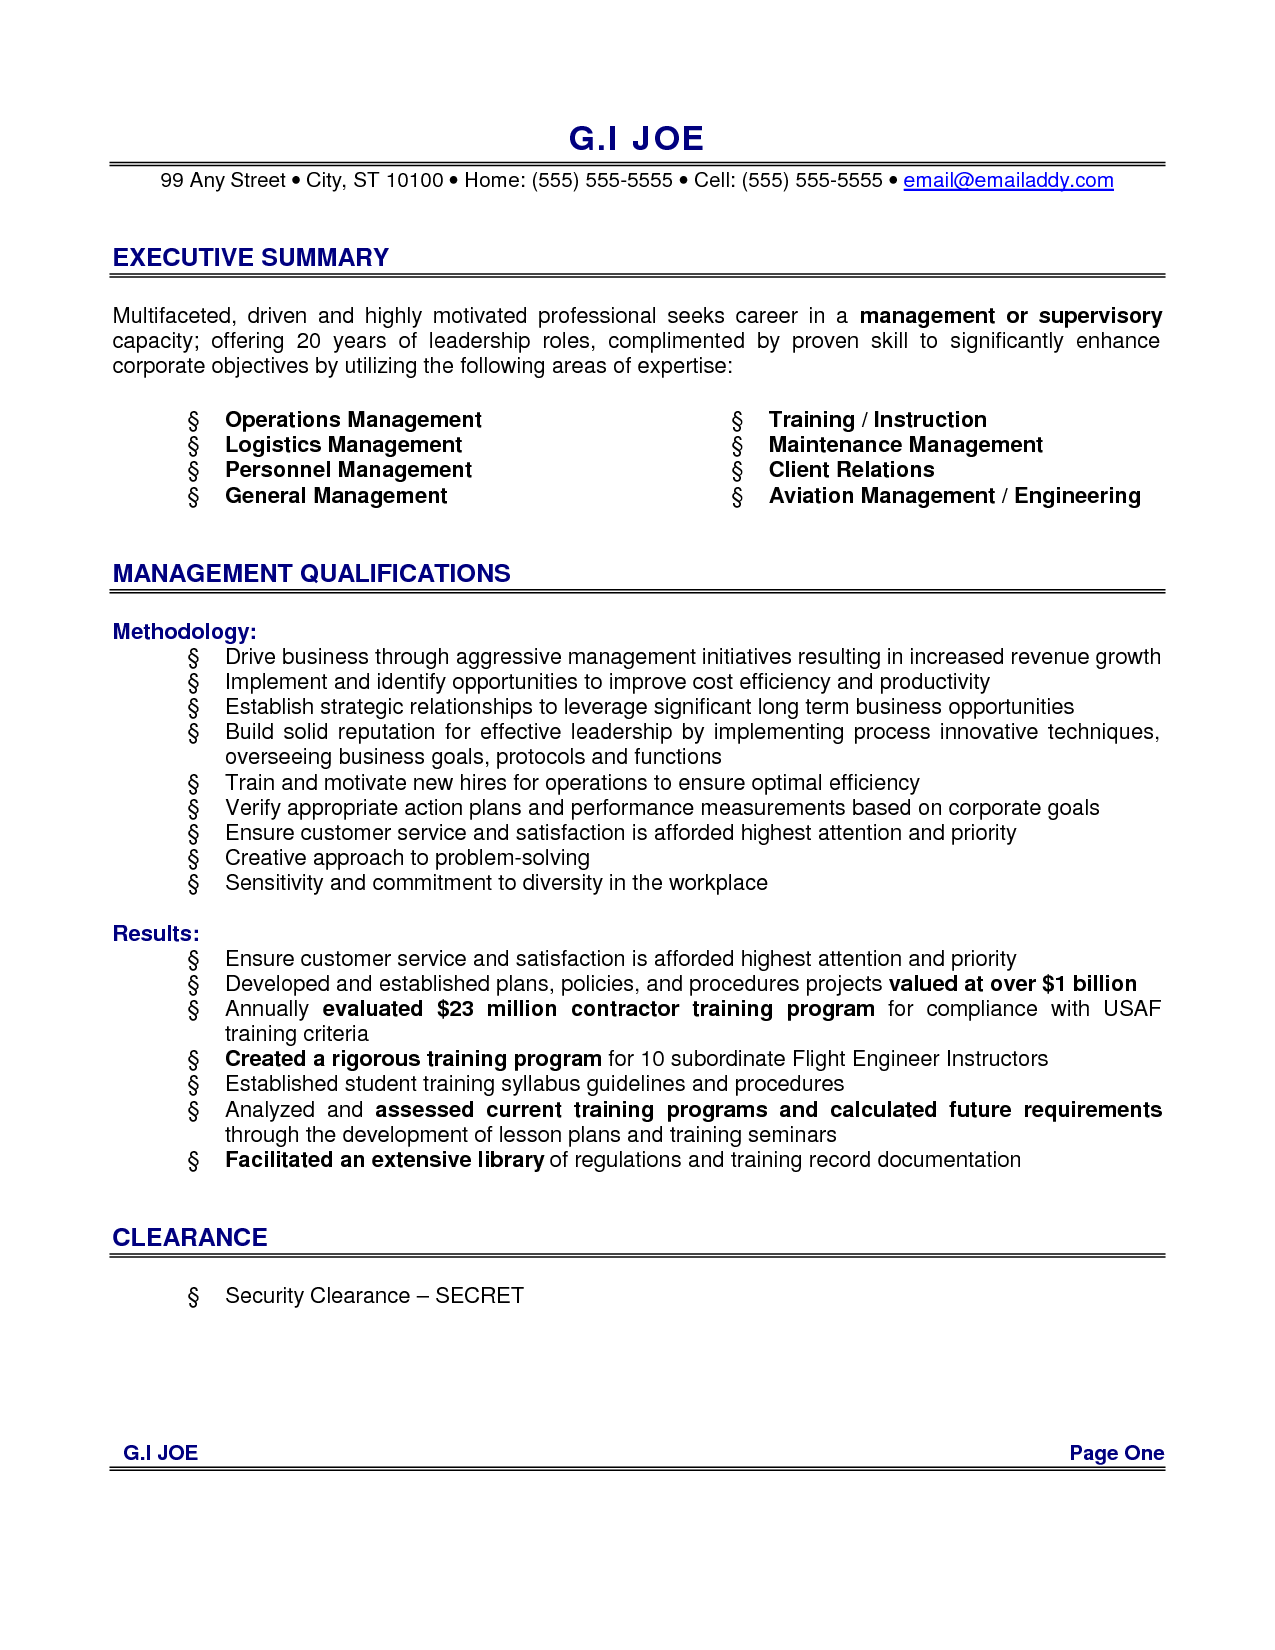 Resume Examples For Executive Summary With Management Qualifications ,  Executive Resume Example As Writing Guidelines , Following The Best Examples  In ...